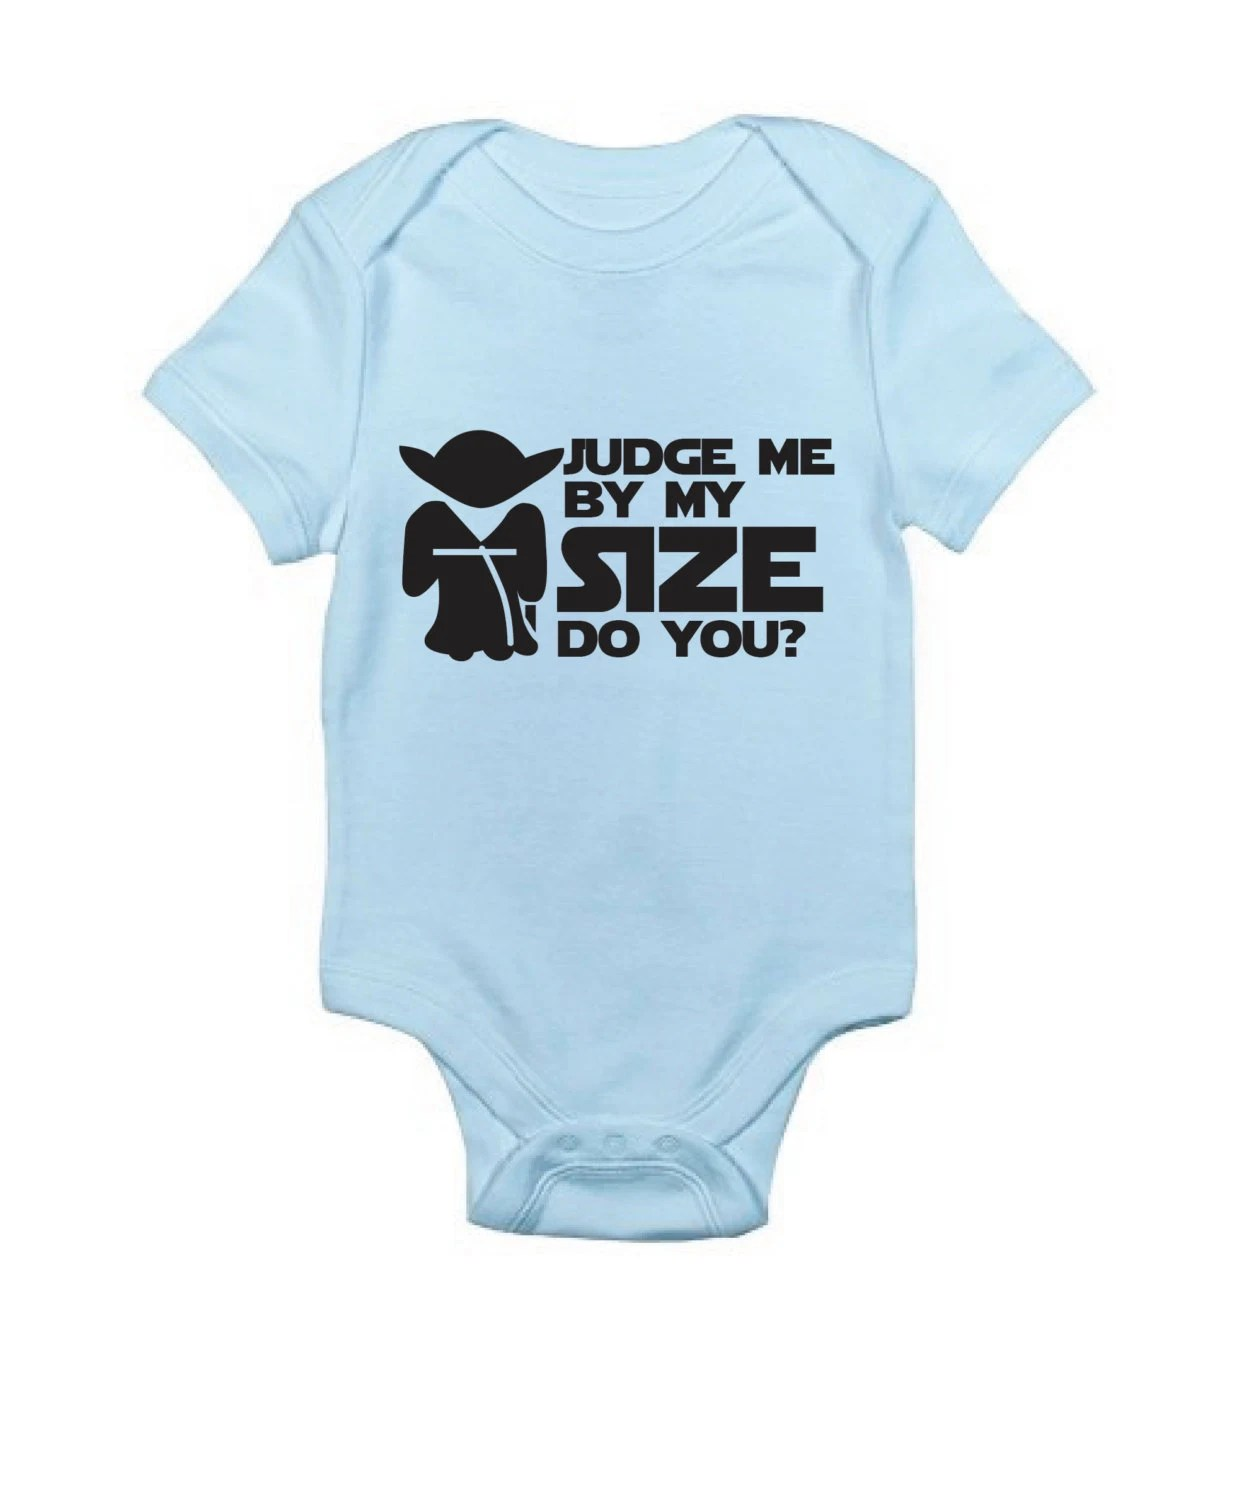 Star Wars Yoda Baby Clothes Judge Me By My Size Do You